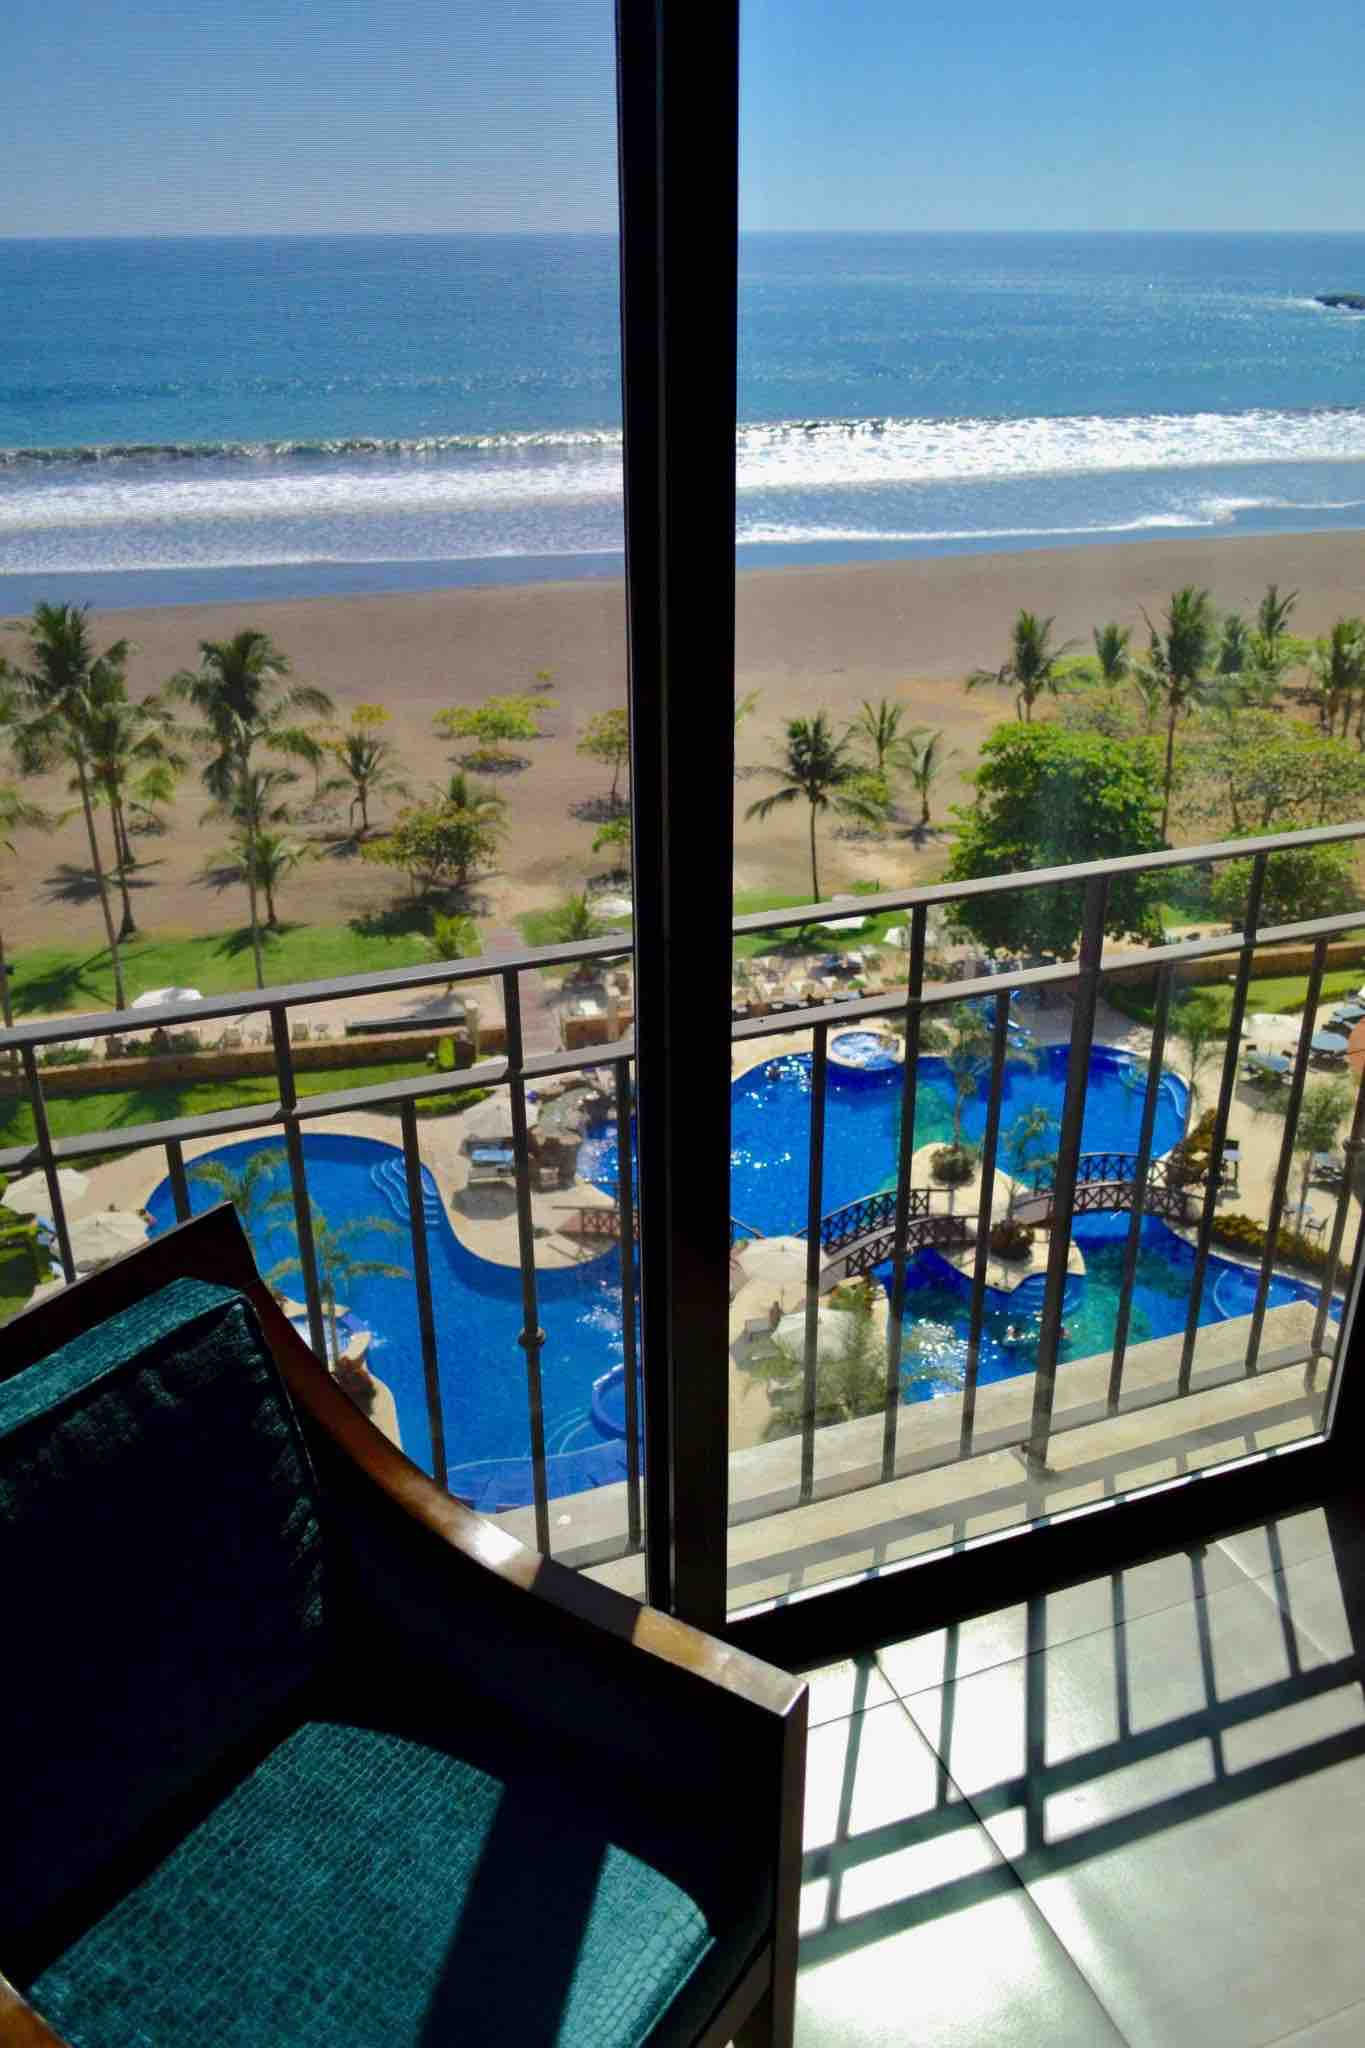 luxury family resort croc's casino resort jaco costa rica